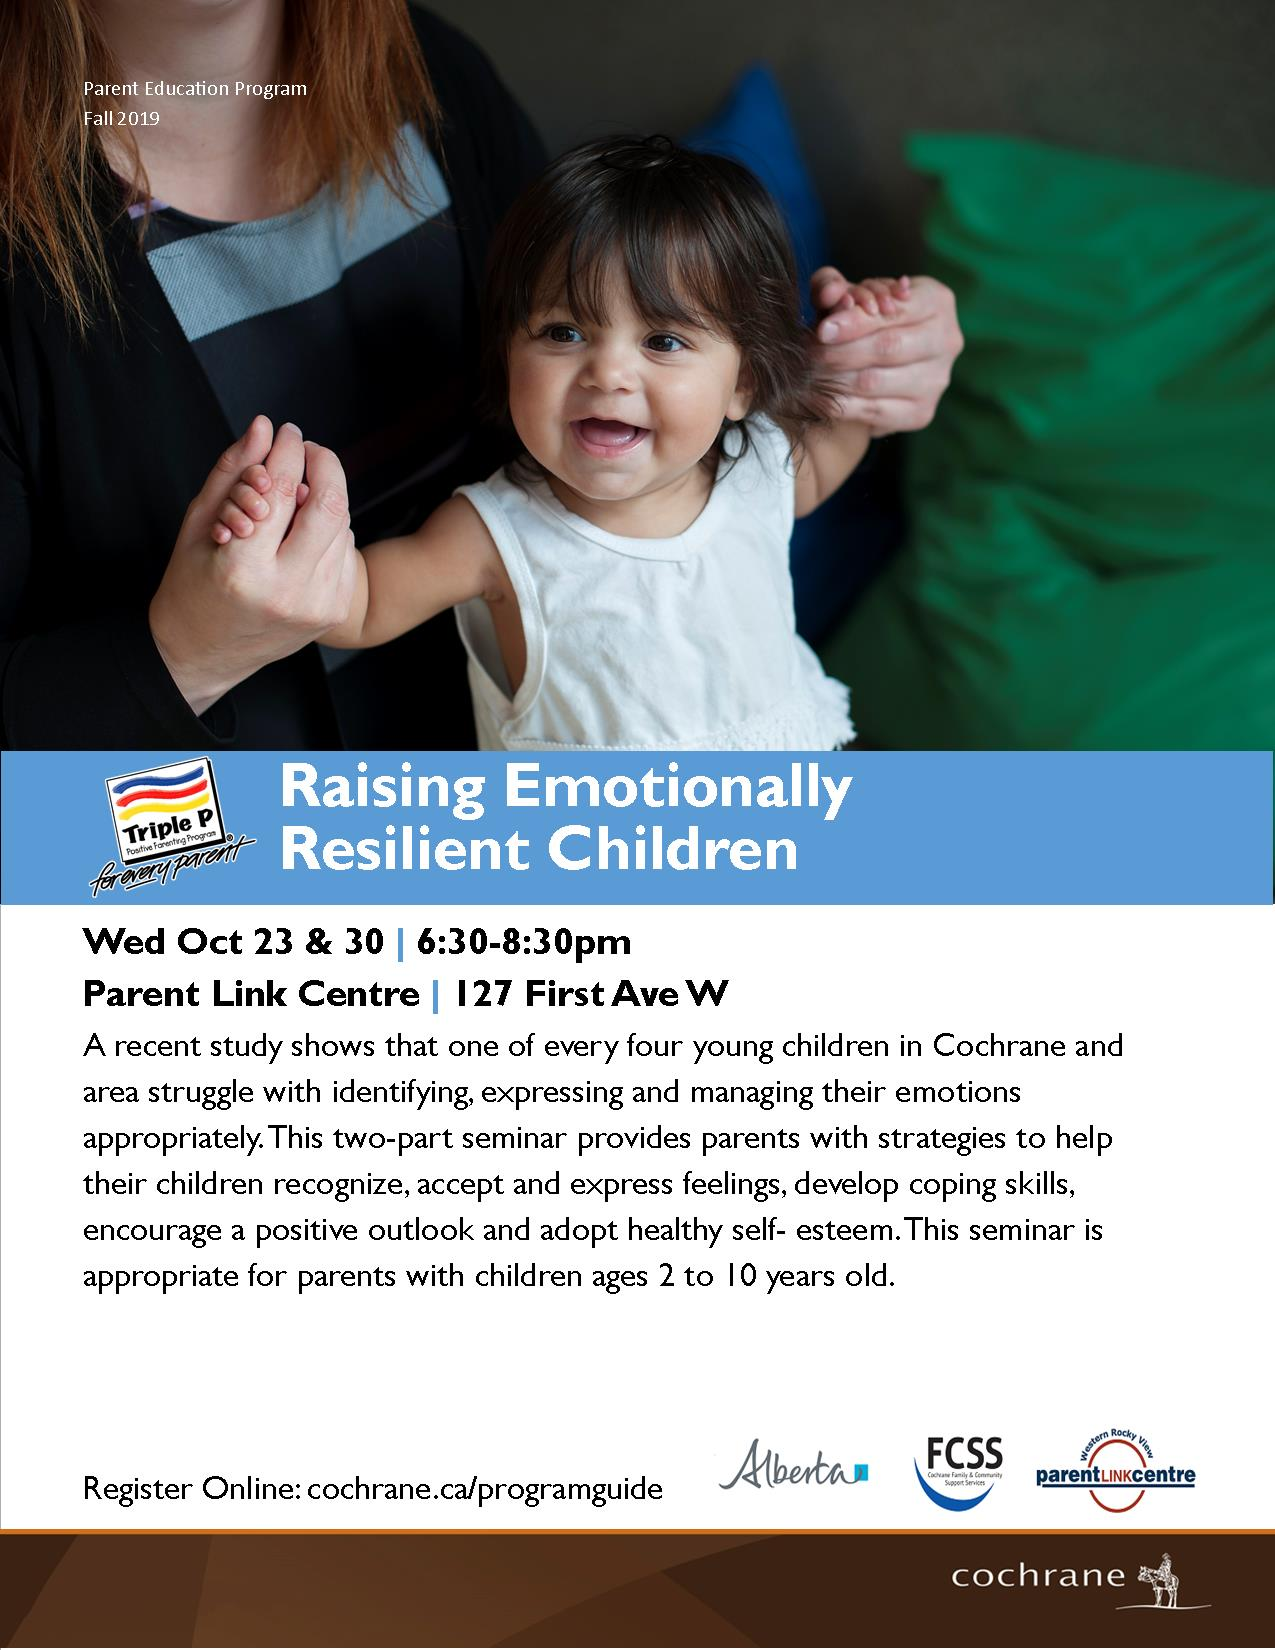 Raising Emotionally Resilient Children 2019